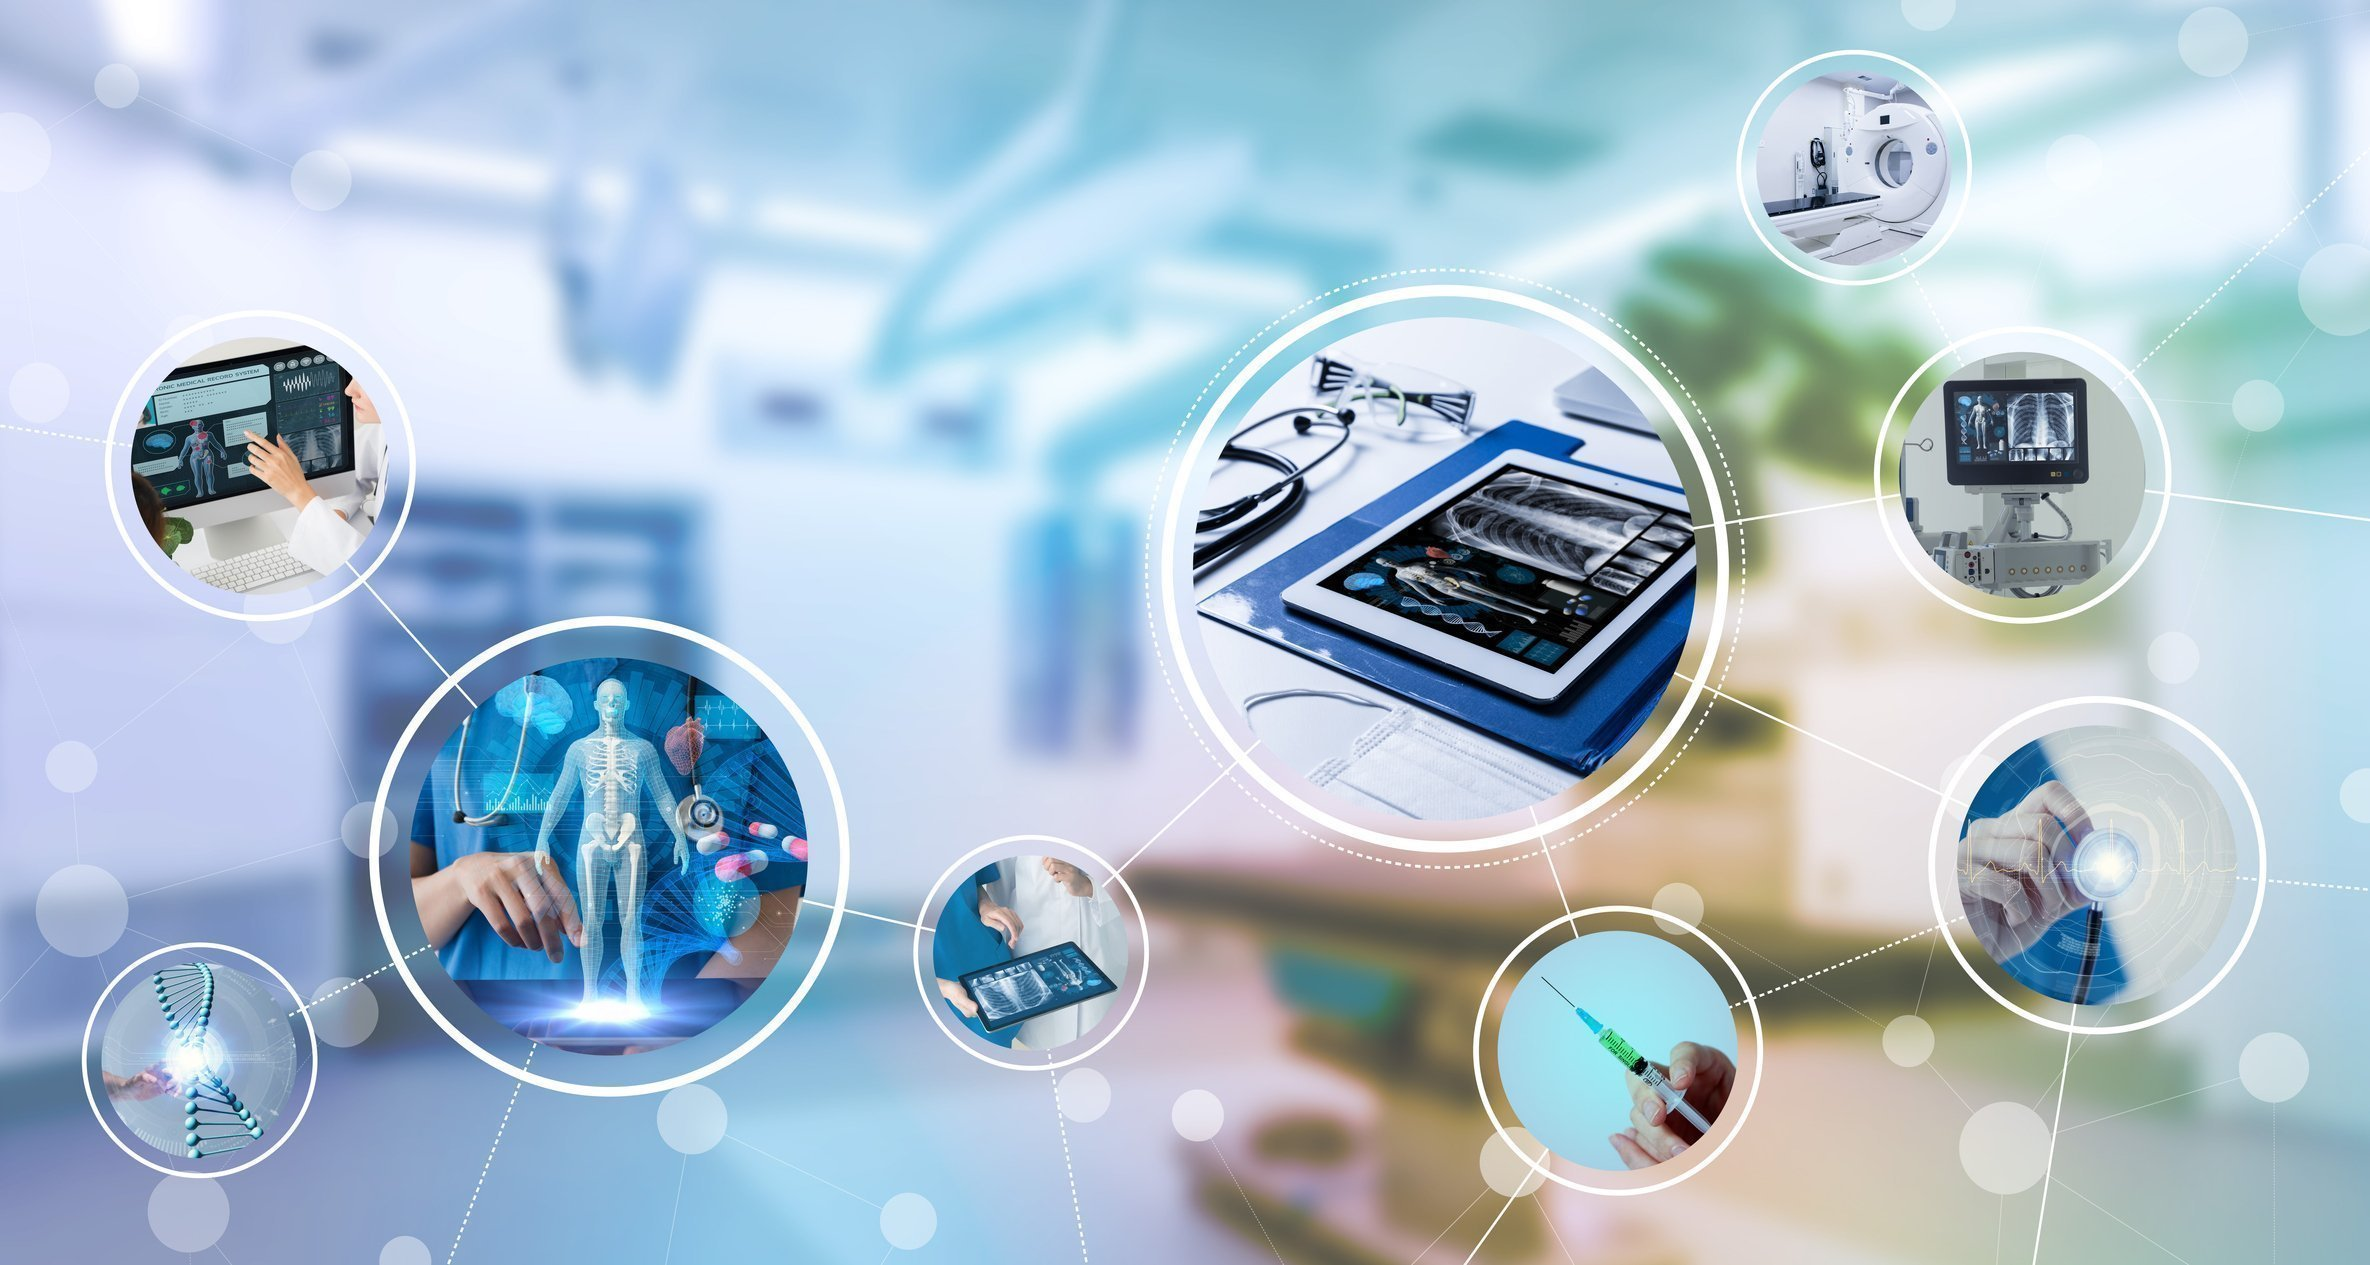 Why IoT is the Future of Healthcare in 2020